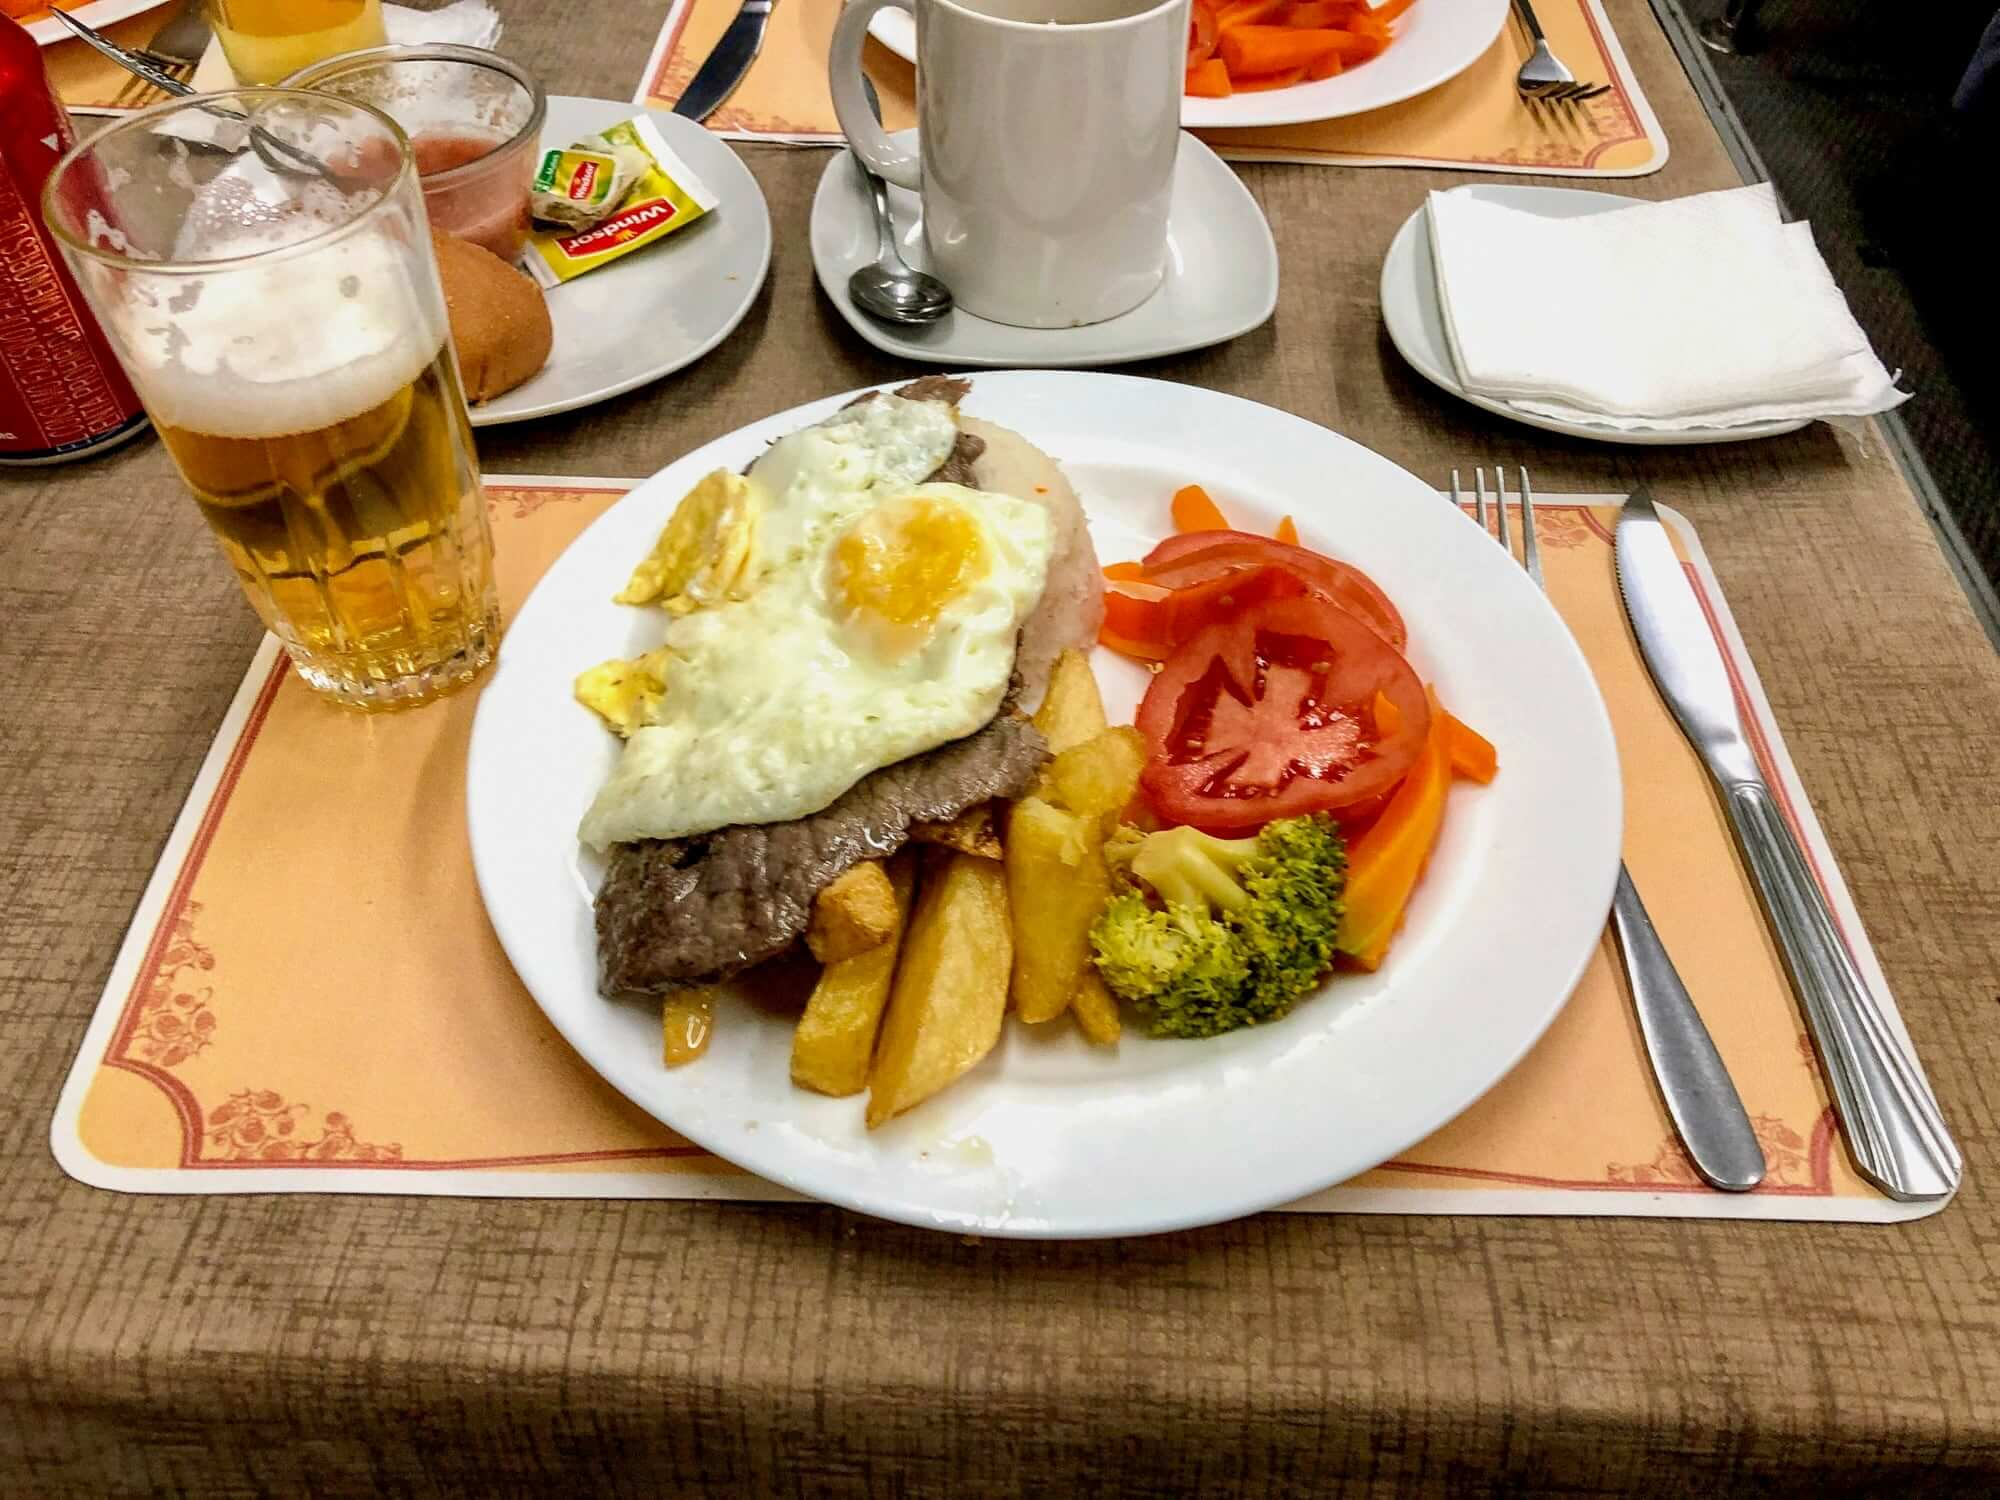 Meal at the Expreso del Sur Bolivia